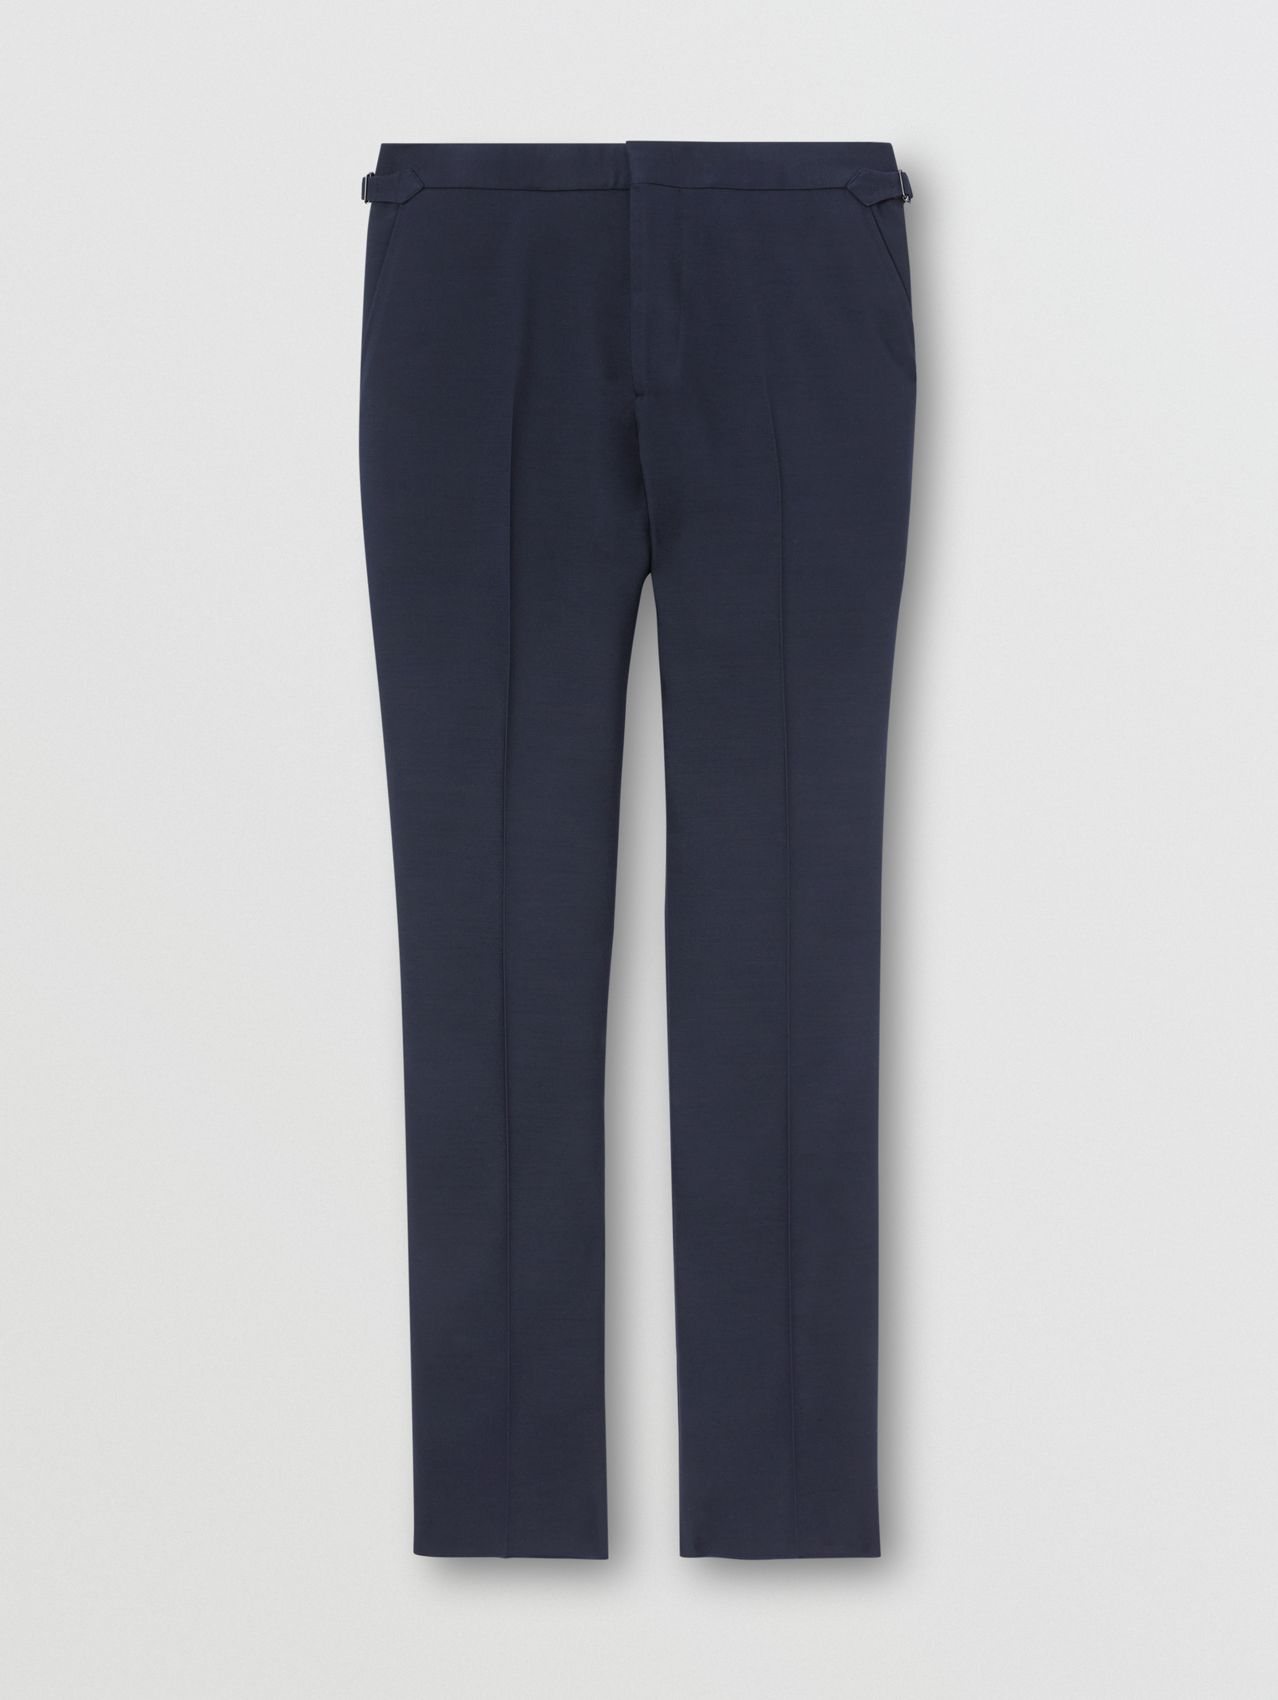 Classic Fit Wool Silk Blend Tailored Trousers in Navy